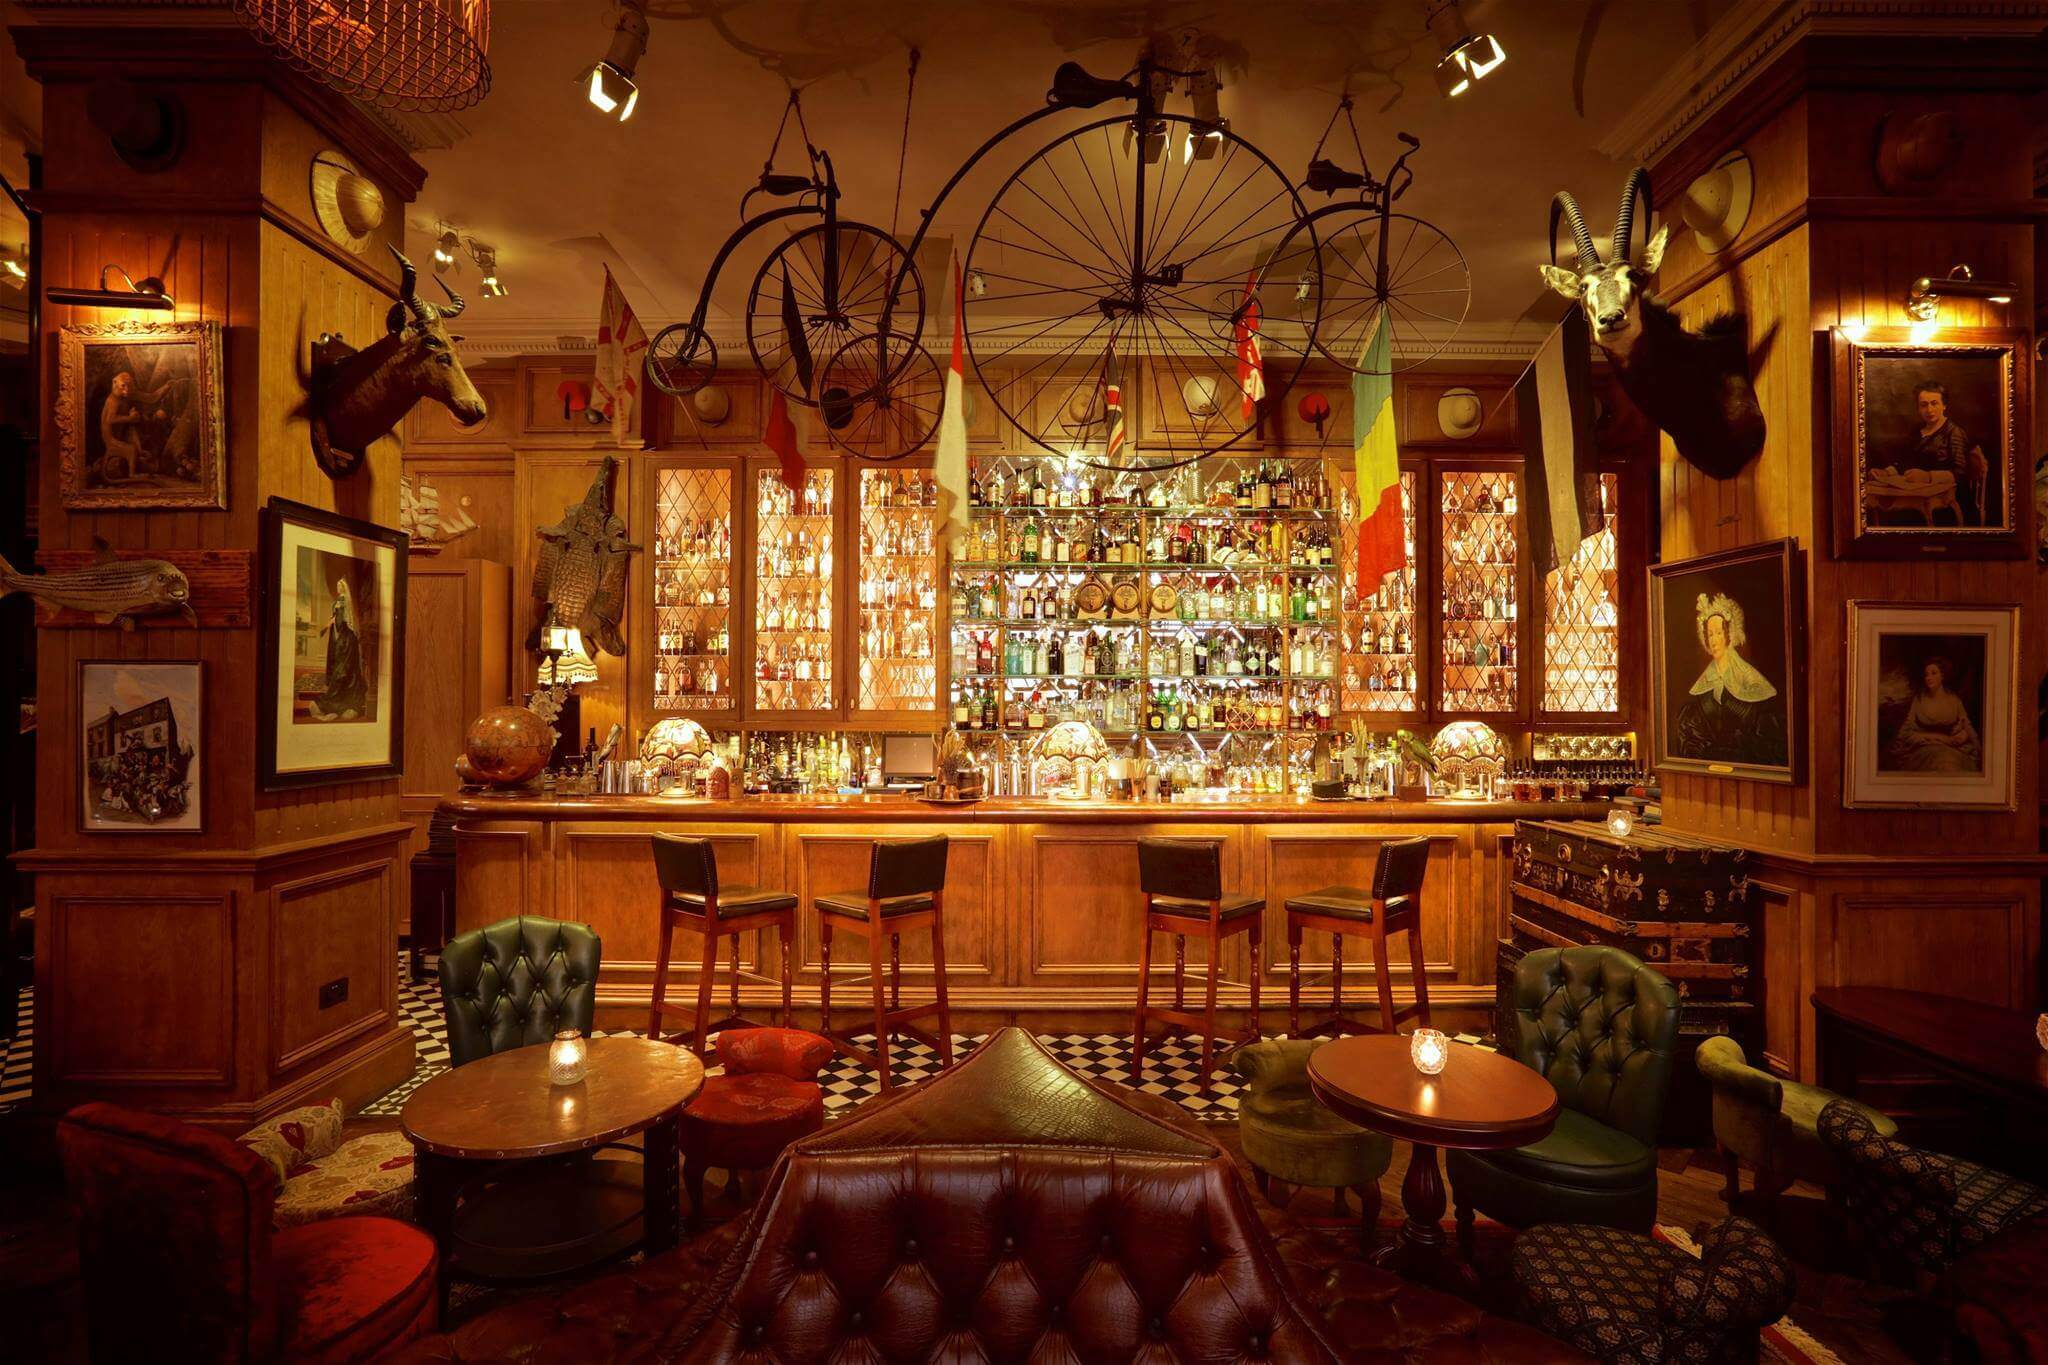 Mr Fogg's, British, Brunch, Bottomless, London, Tavern, Free Flowing